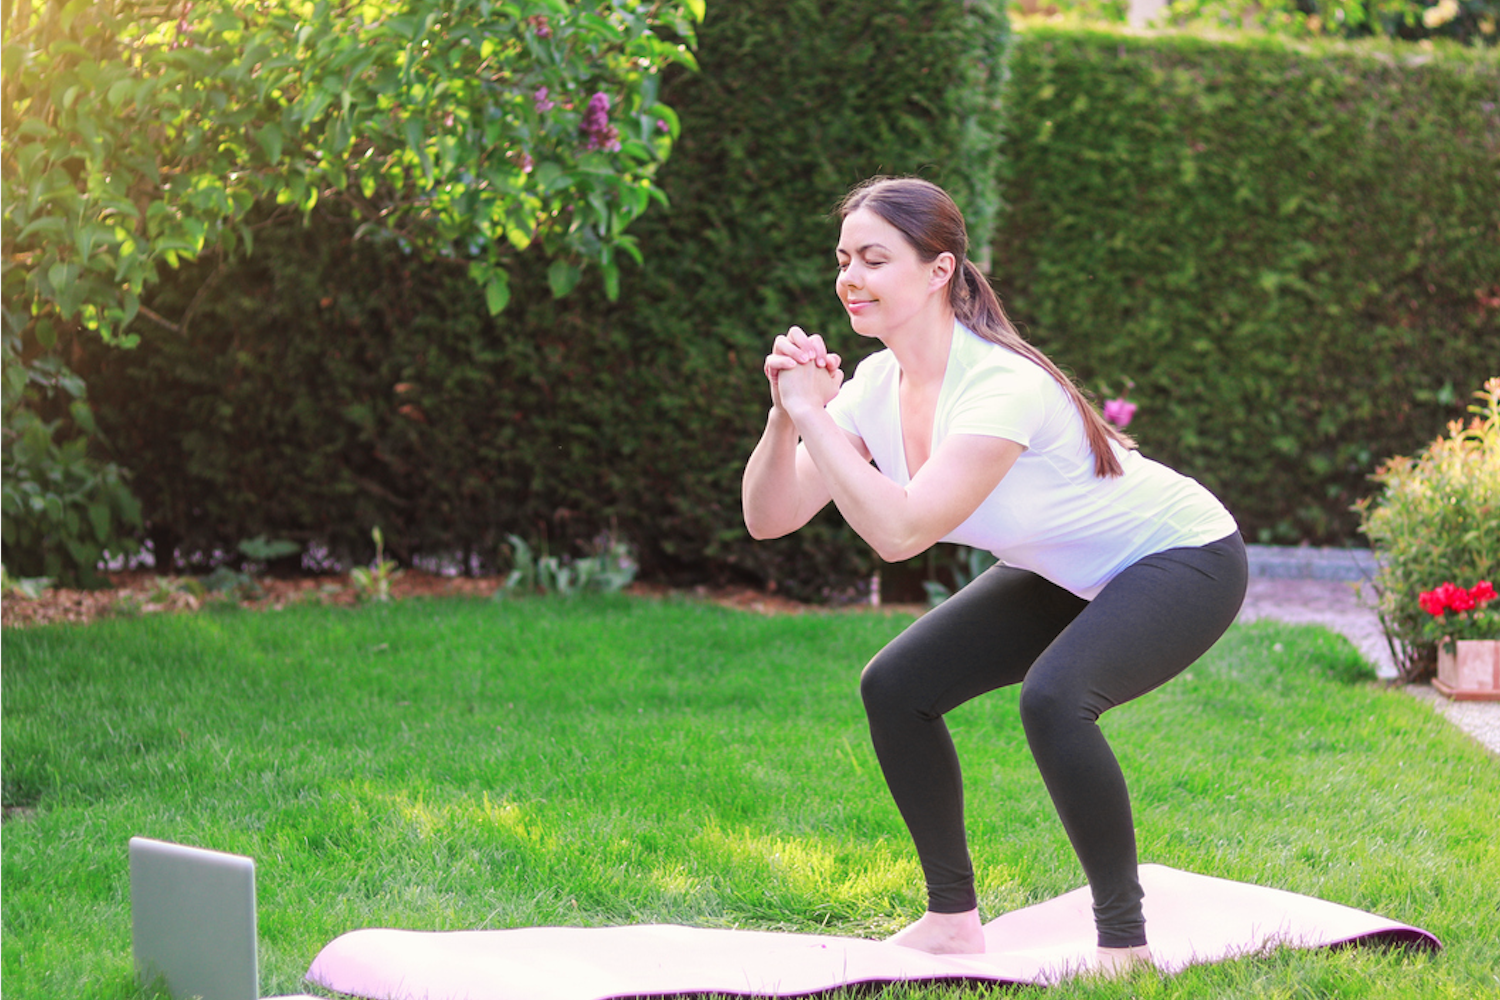 Here's a Great 10-Minute Lower Body Workout You Can Do at Home